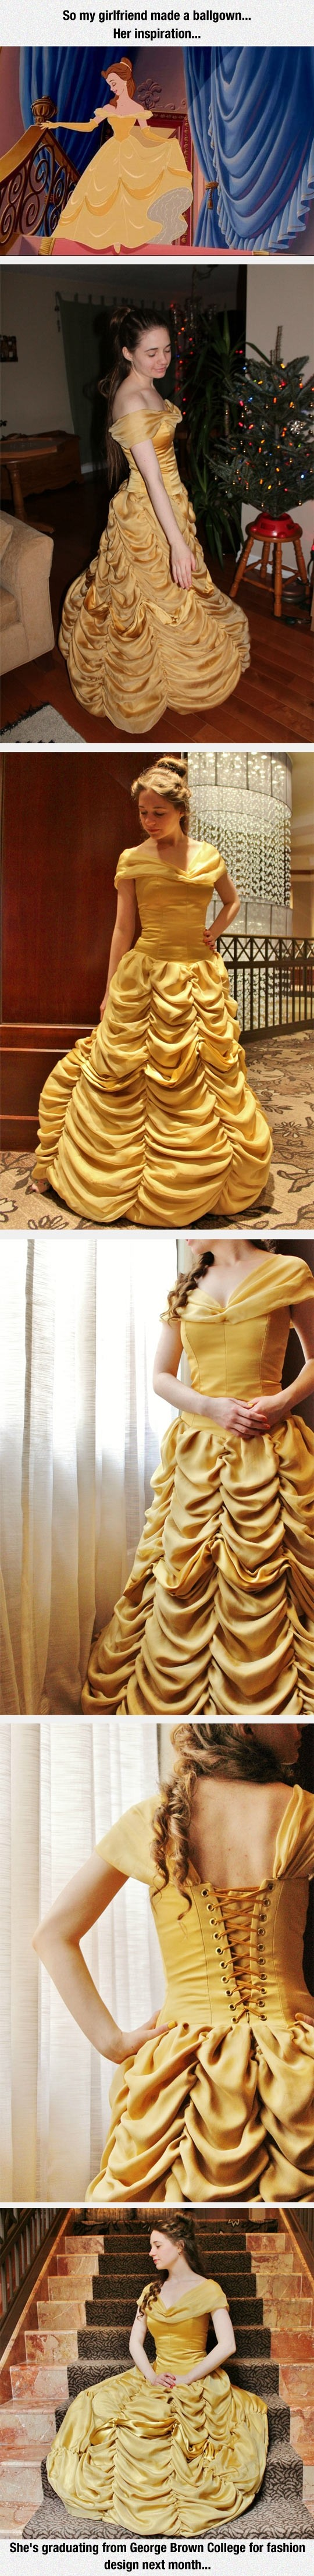 Amazing Dress Inspired By A Disney Princess http://ibeebz.com